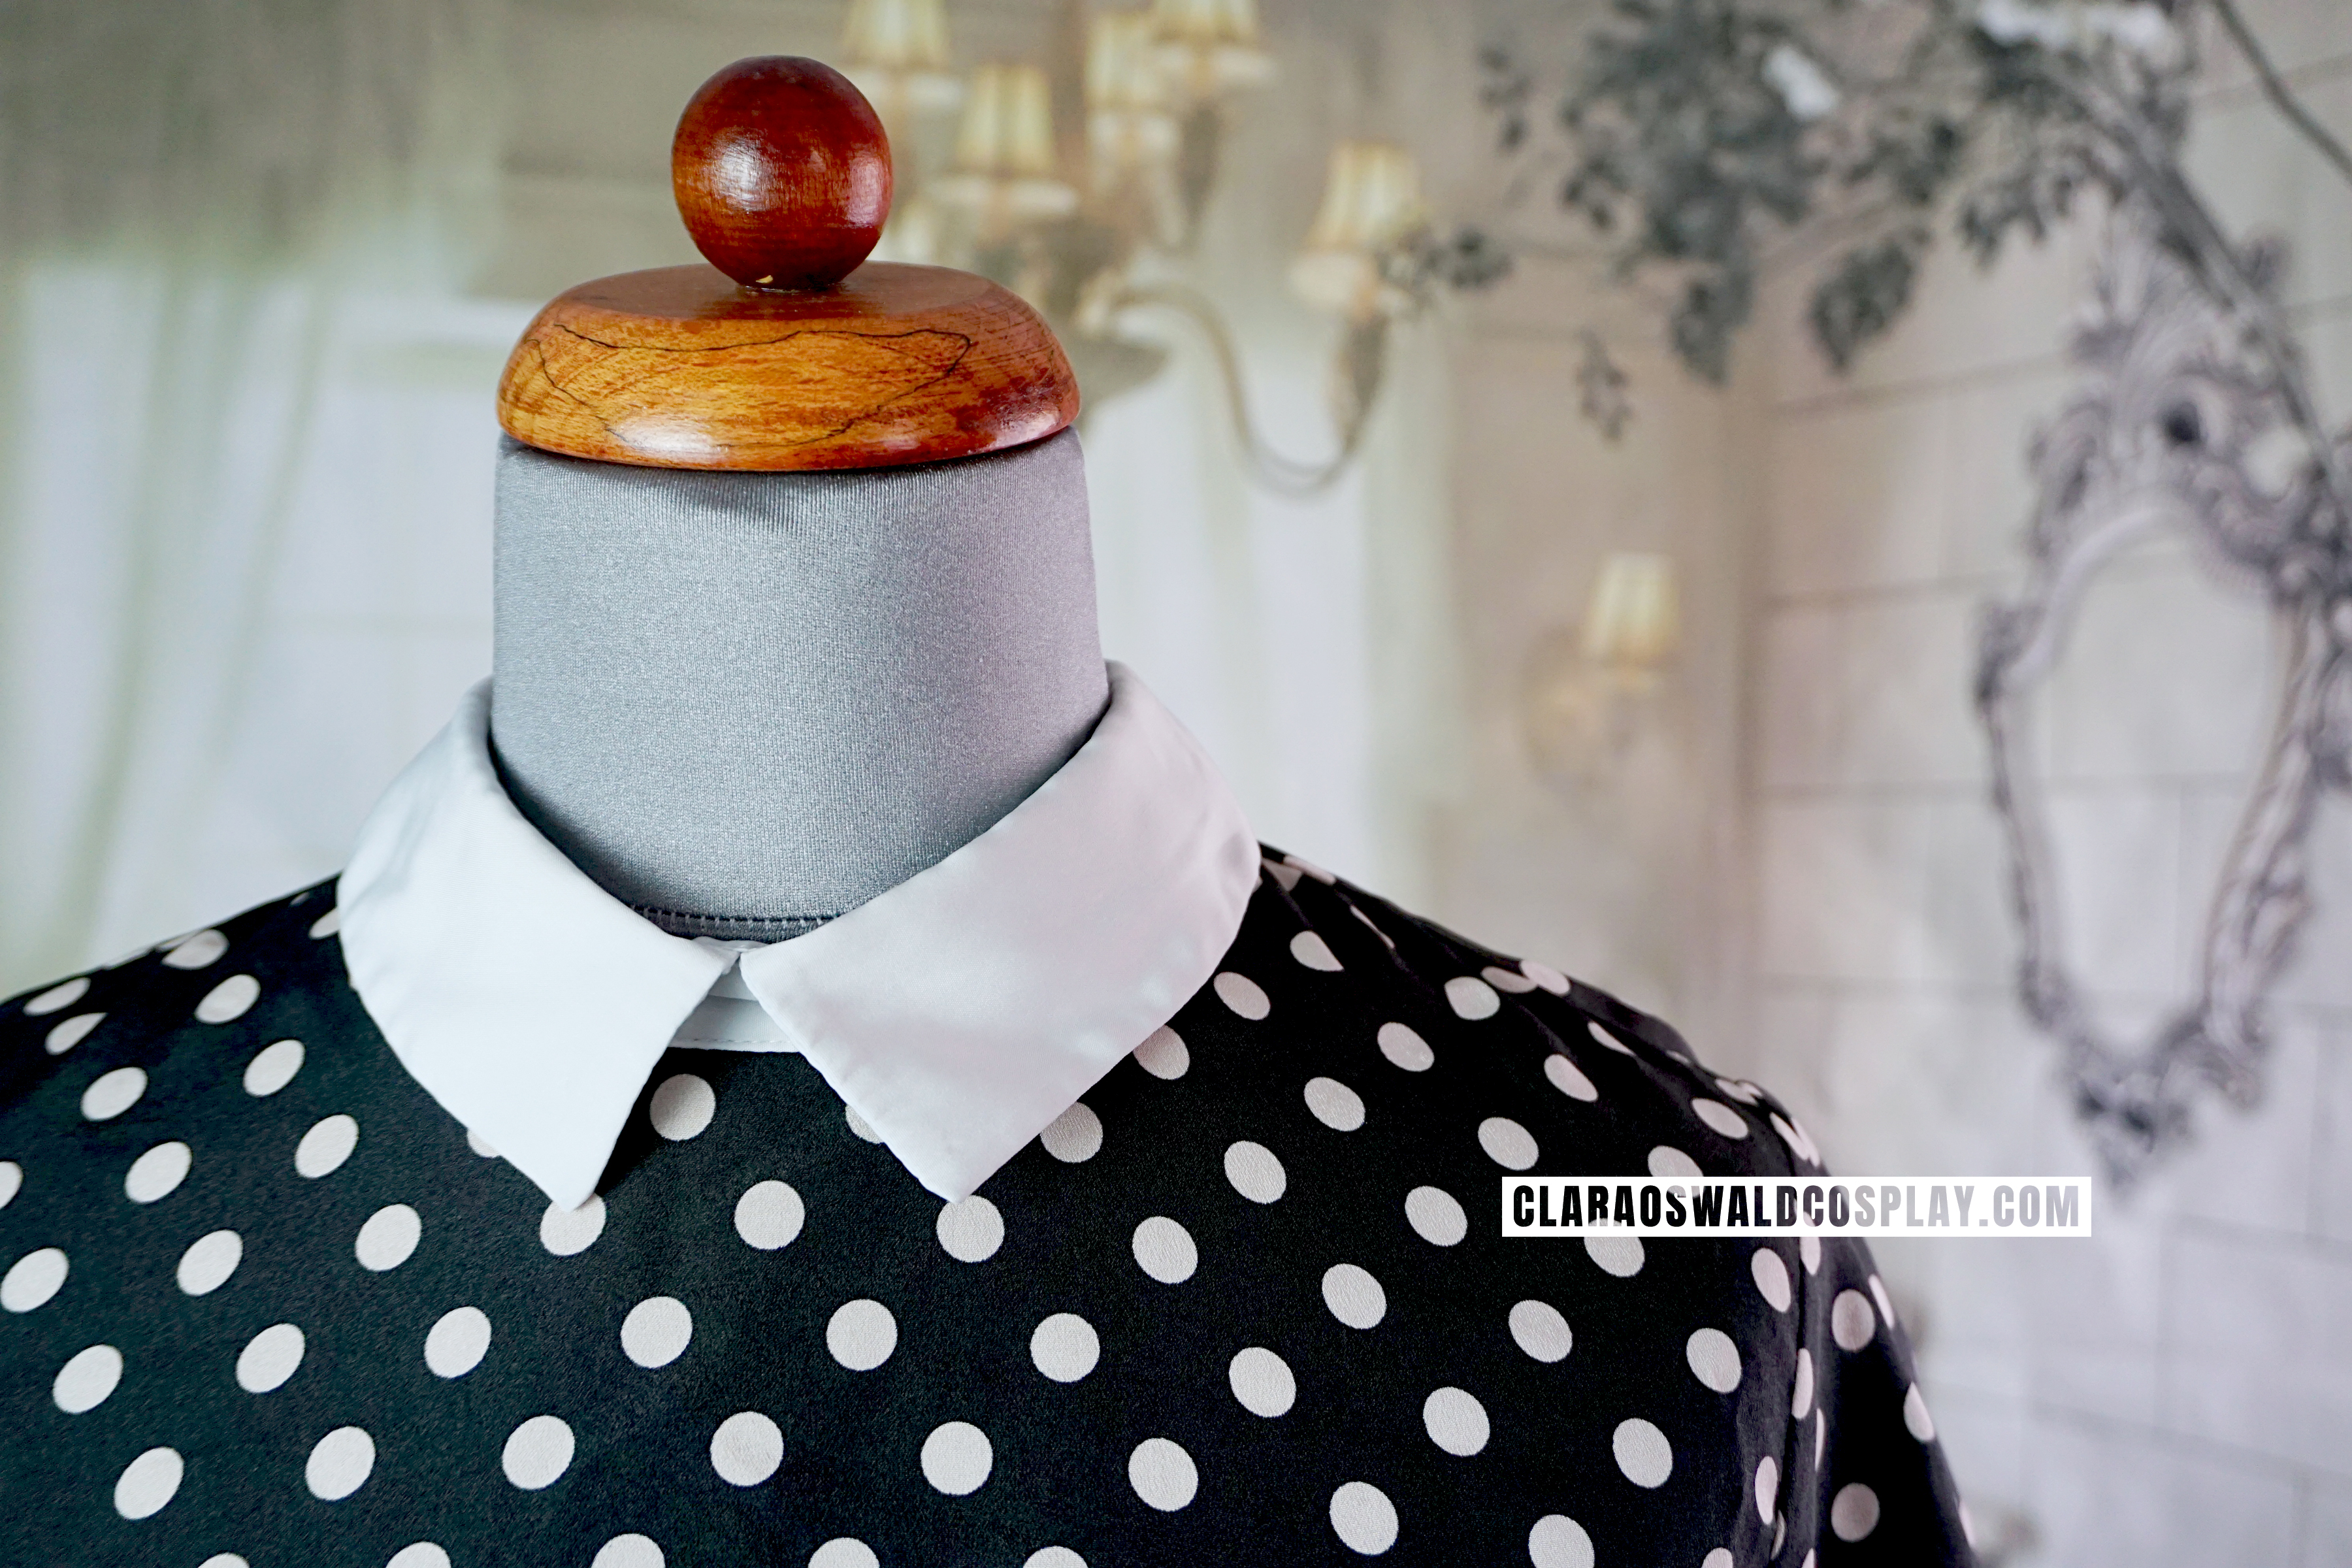 A close-up of the collar of the underrated River Island Polka Dot Blouse.